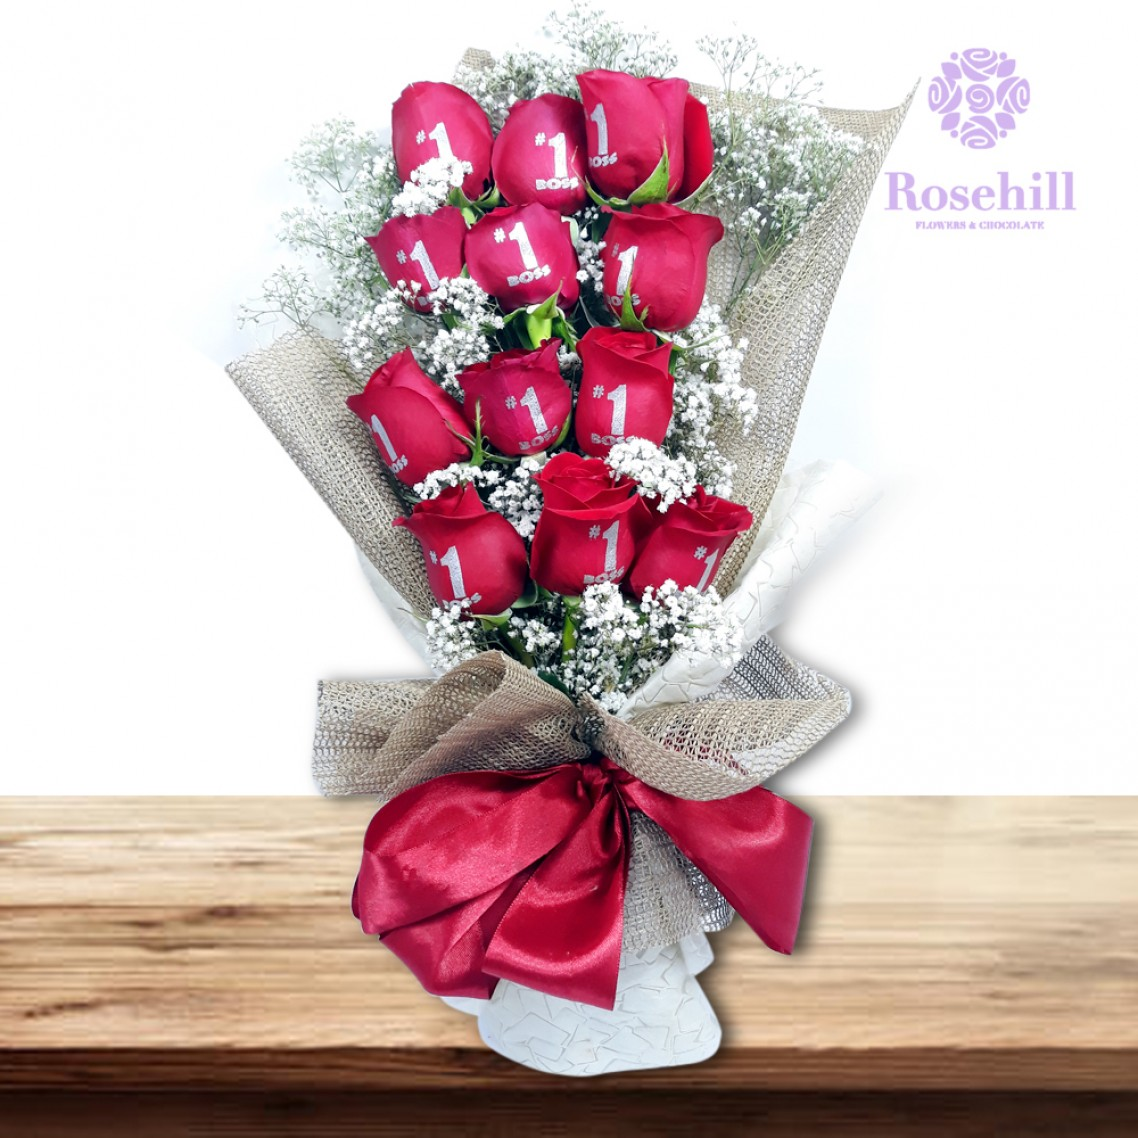 1524665916-h-250-Rosehill's Number 1 Boss Bouquet with Baby's Breath- Red.jpg